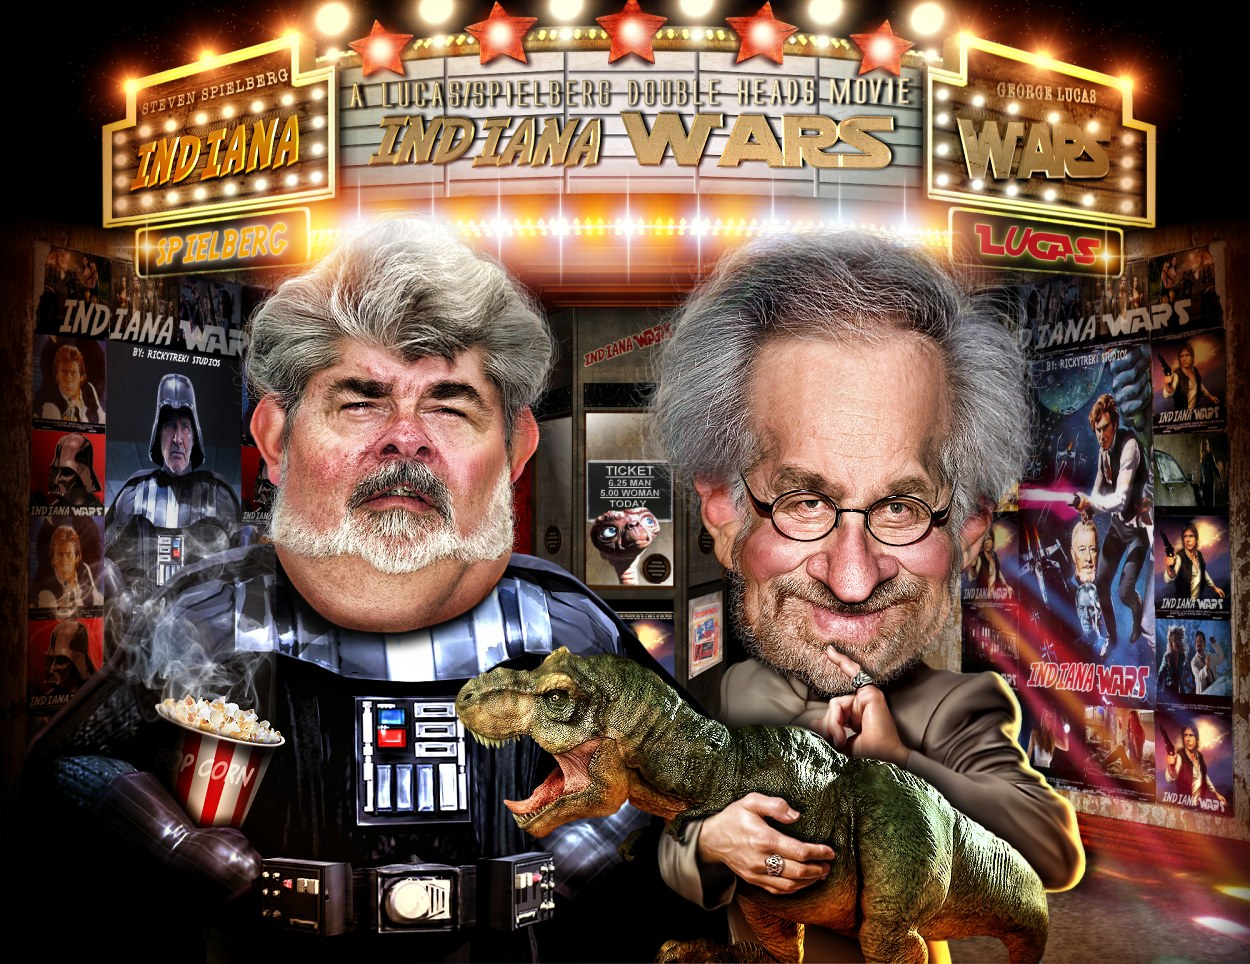 'INDIANA WARS' BY SPIELBERG AND LUCAS